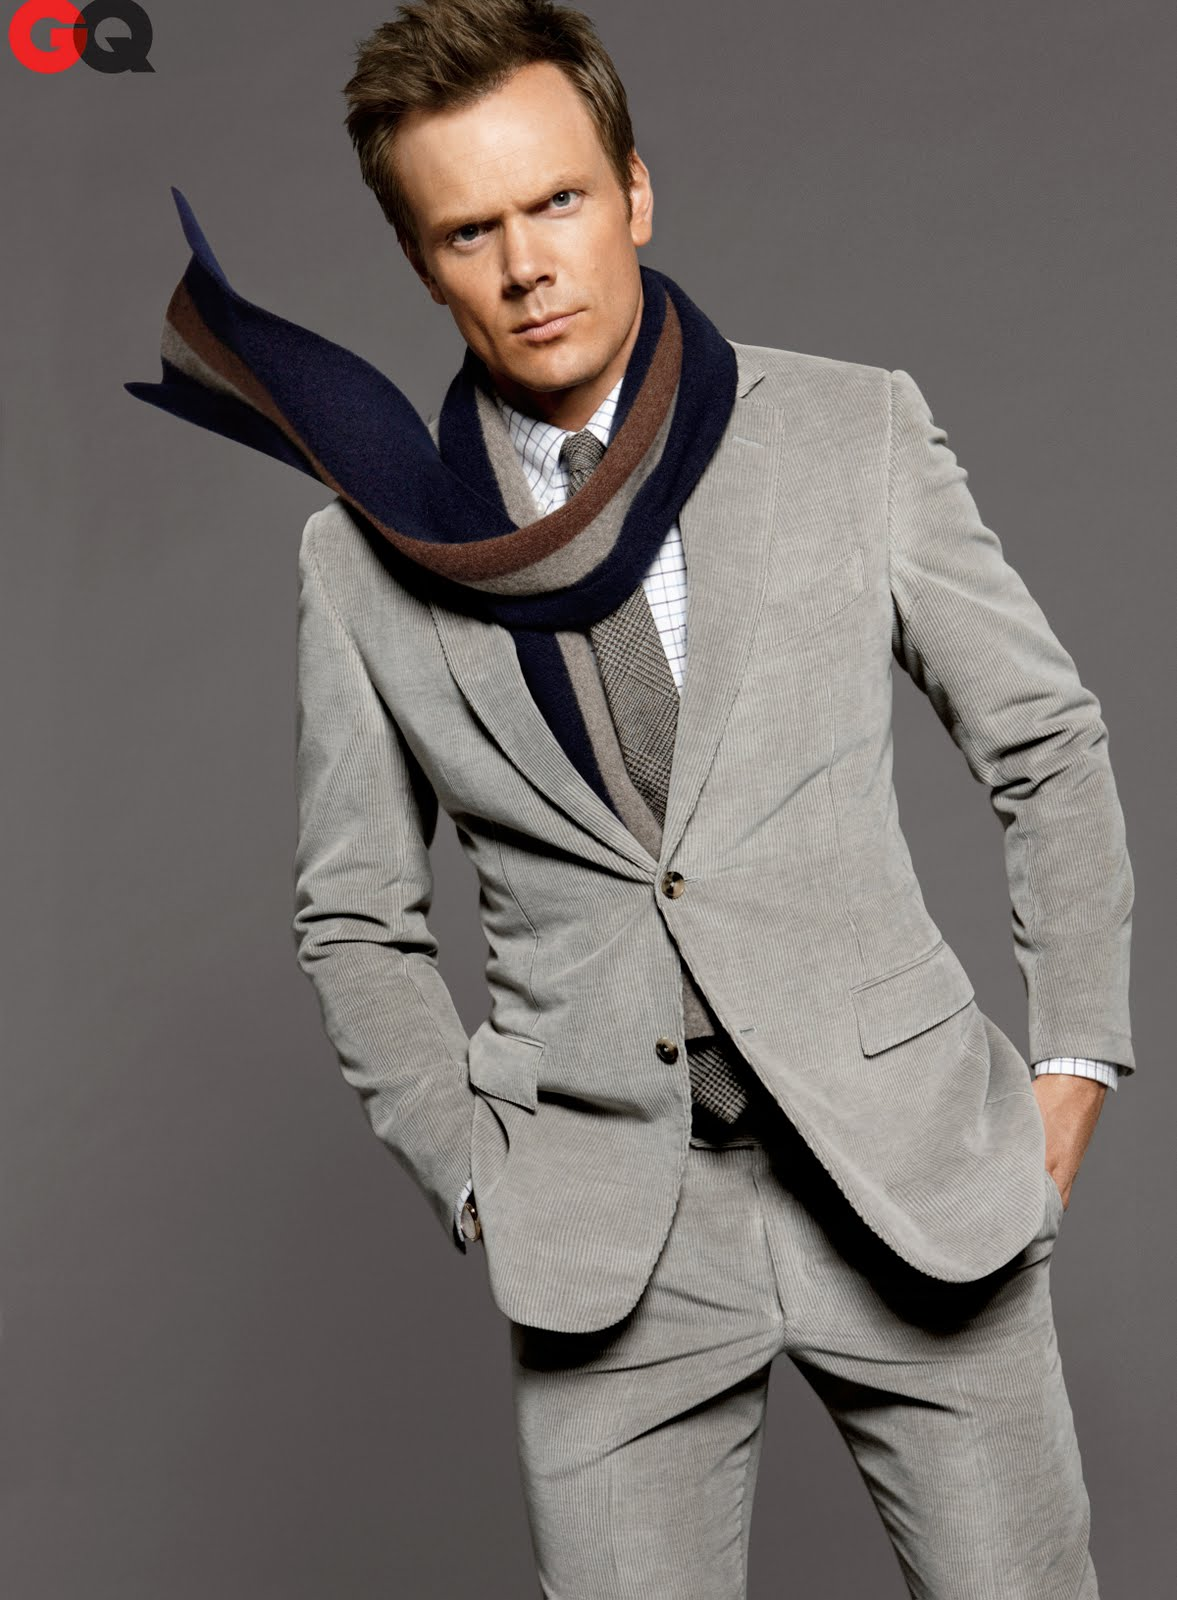 GQ November Joel McHale ... that the actor will either be a discovery or on TV but likely someone ...